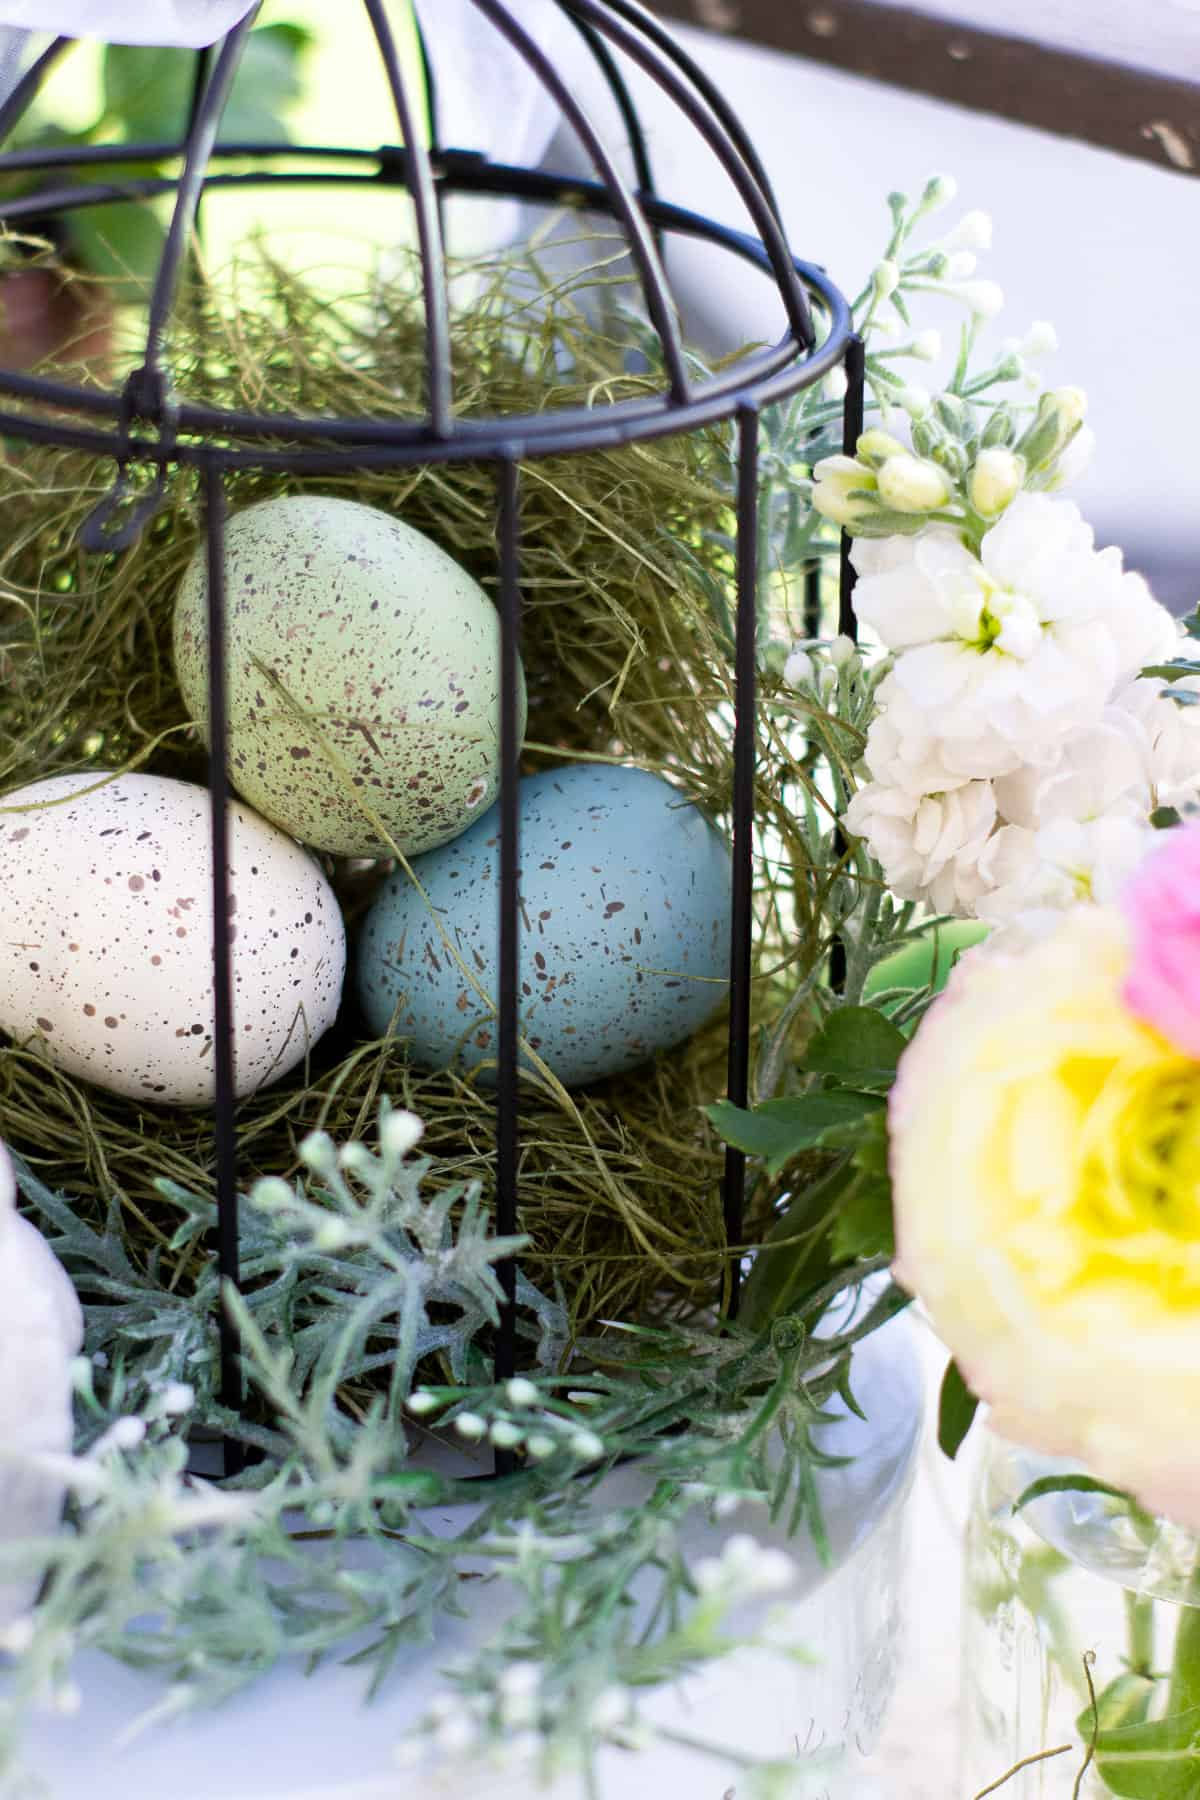 spring bird cage pinterest challenge vignette with bird cage and spring elements